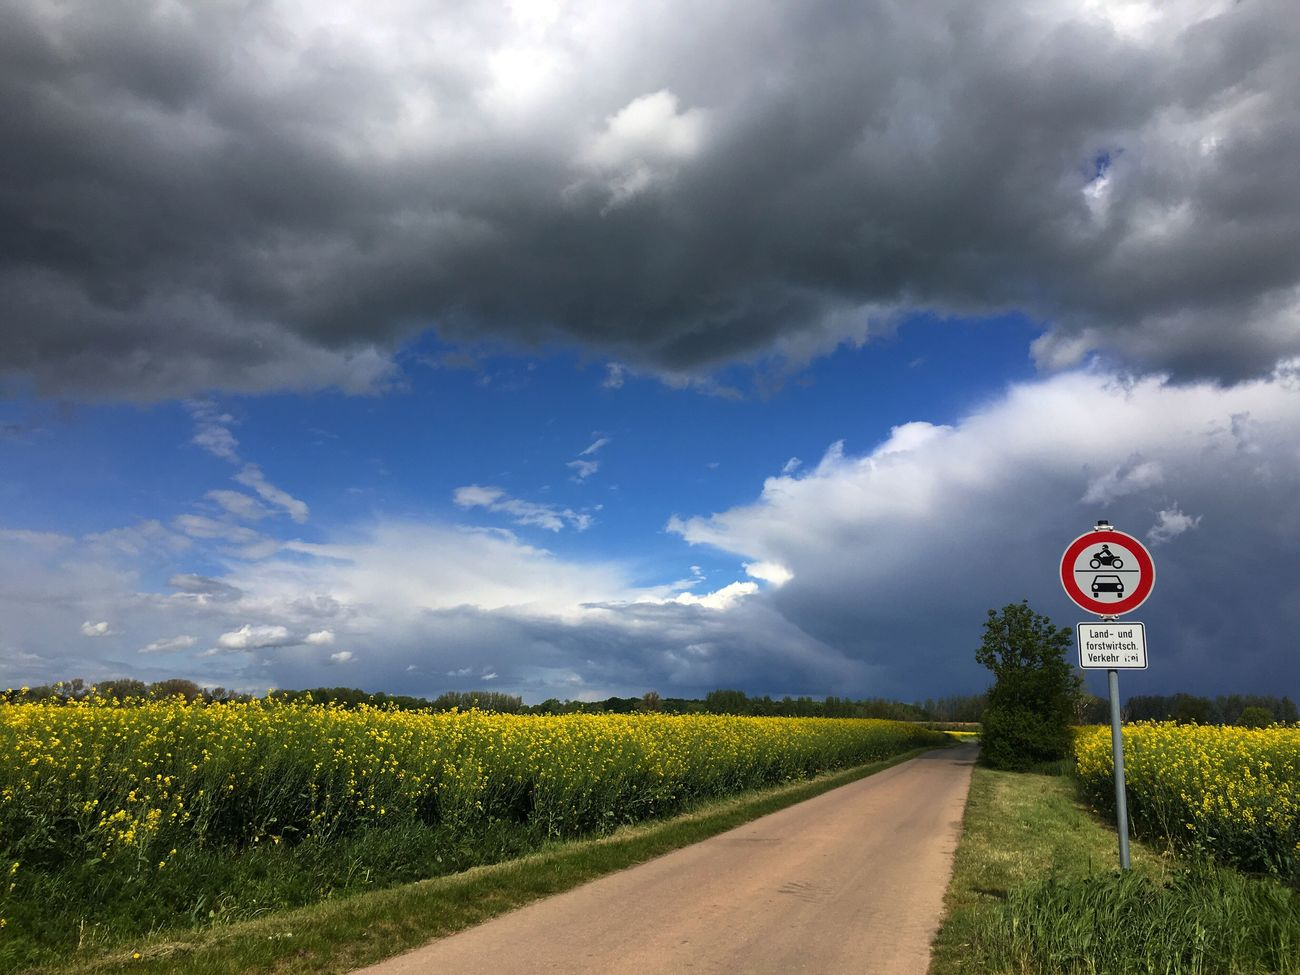 Nature Sky Cloud - Sky Growth No People Beauty In Nature Field Road Sign Day Outdoors Grass Communication Scenics The Way Forward Speed Limit Sign Tree Tranquil Scene Road Landscape Clouds Blue Blue Sky Summer Storm Cloud Clouds And Sky